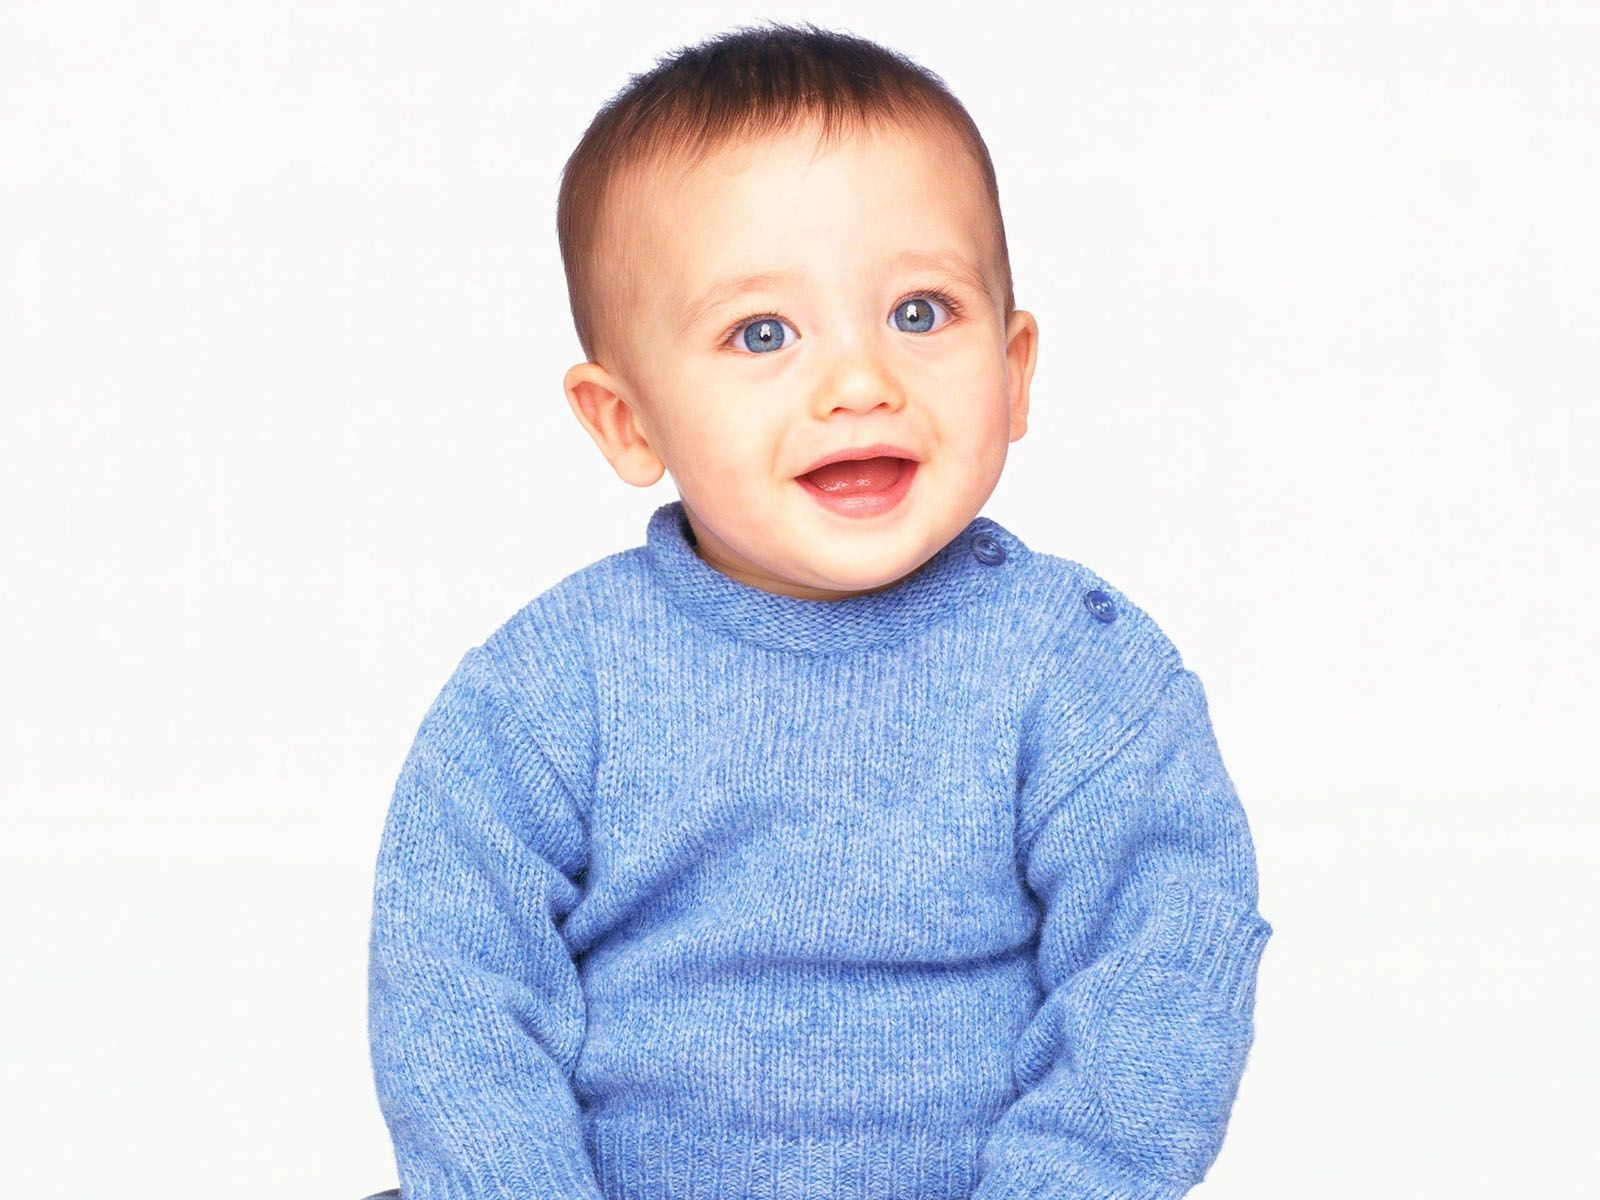 baby wallpapers with smile free download kidshow to spoil them